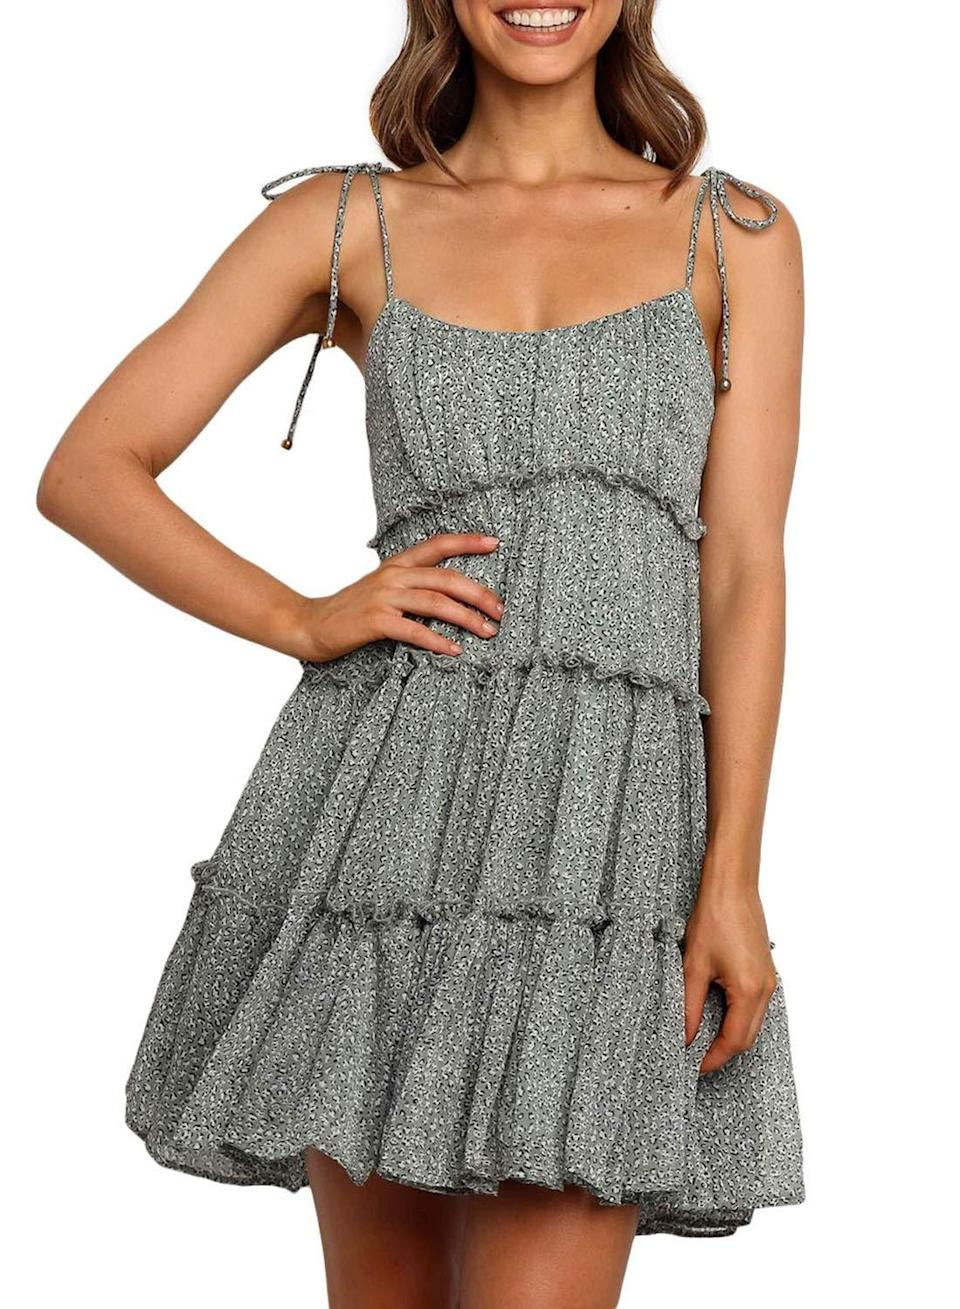 """<br><br><strong>Blibea</strong> Spaghetti Strap Ruffle Dress, $, available at <a href=""""https://amzn.to/2SJRf2l"""" rel=""""nofollow noopener"""" target=""""_blank"""" data-ylk=""""slk:Amazon"""" class=""""link rapid-noclick-resp"""">Amazon</a>"""